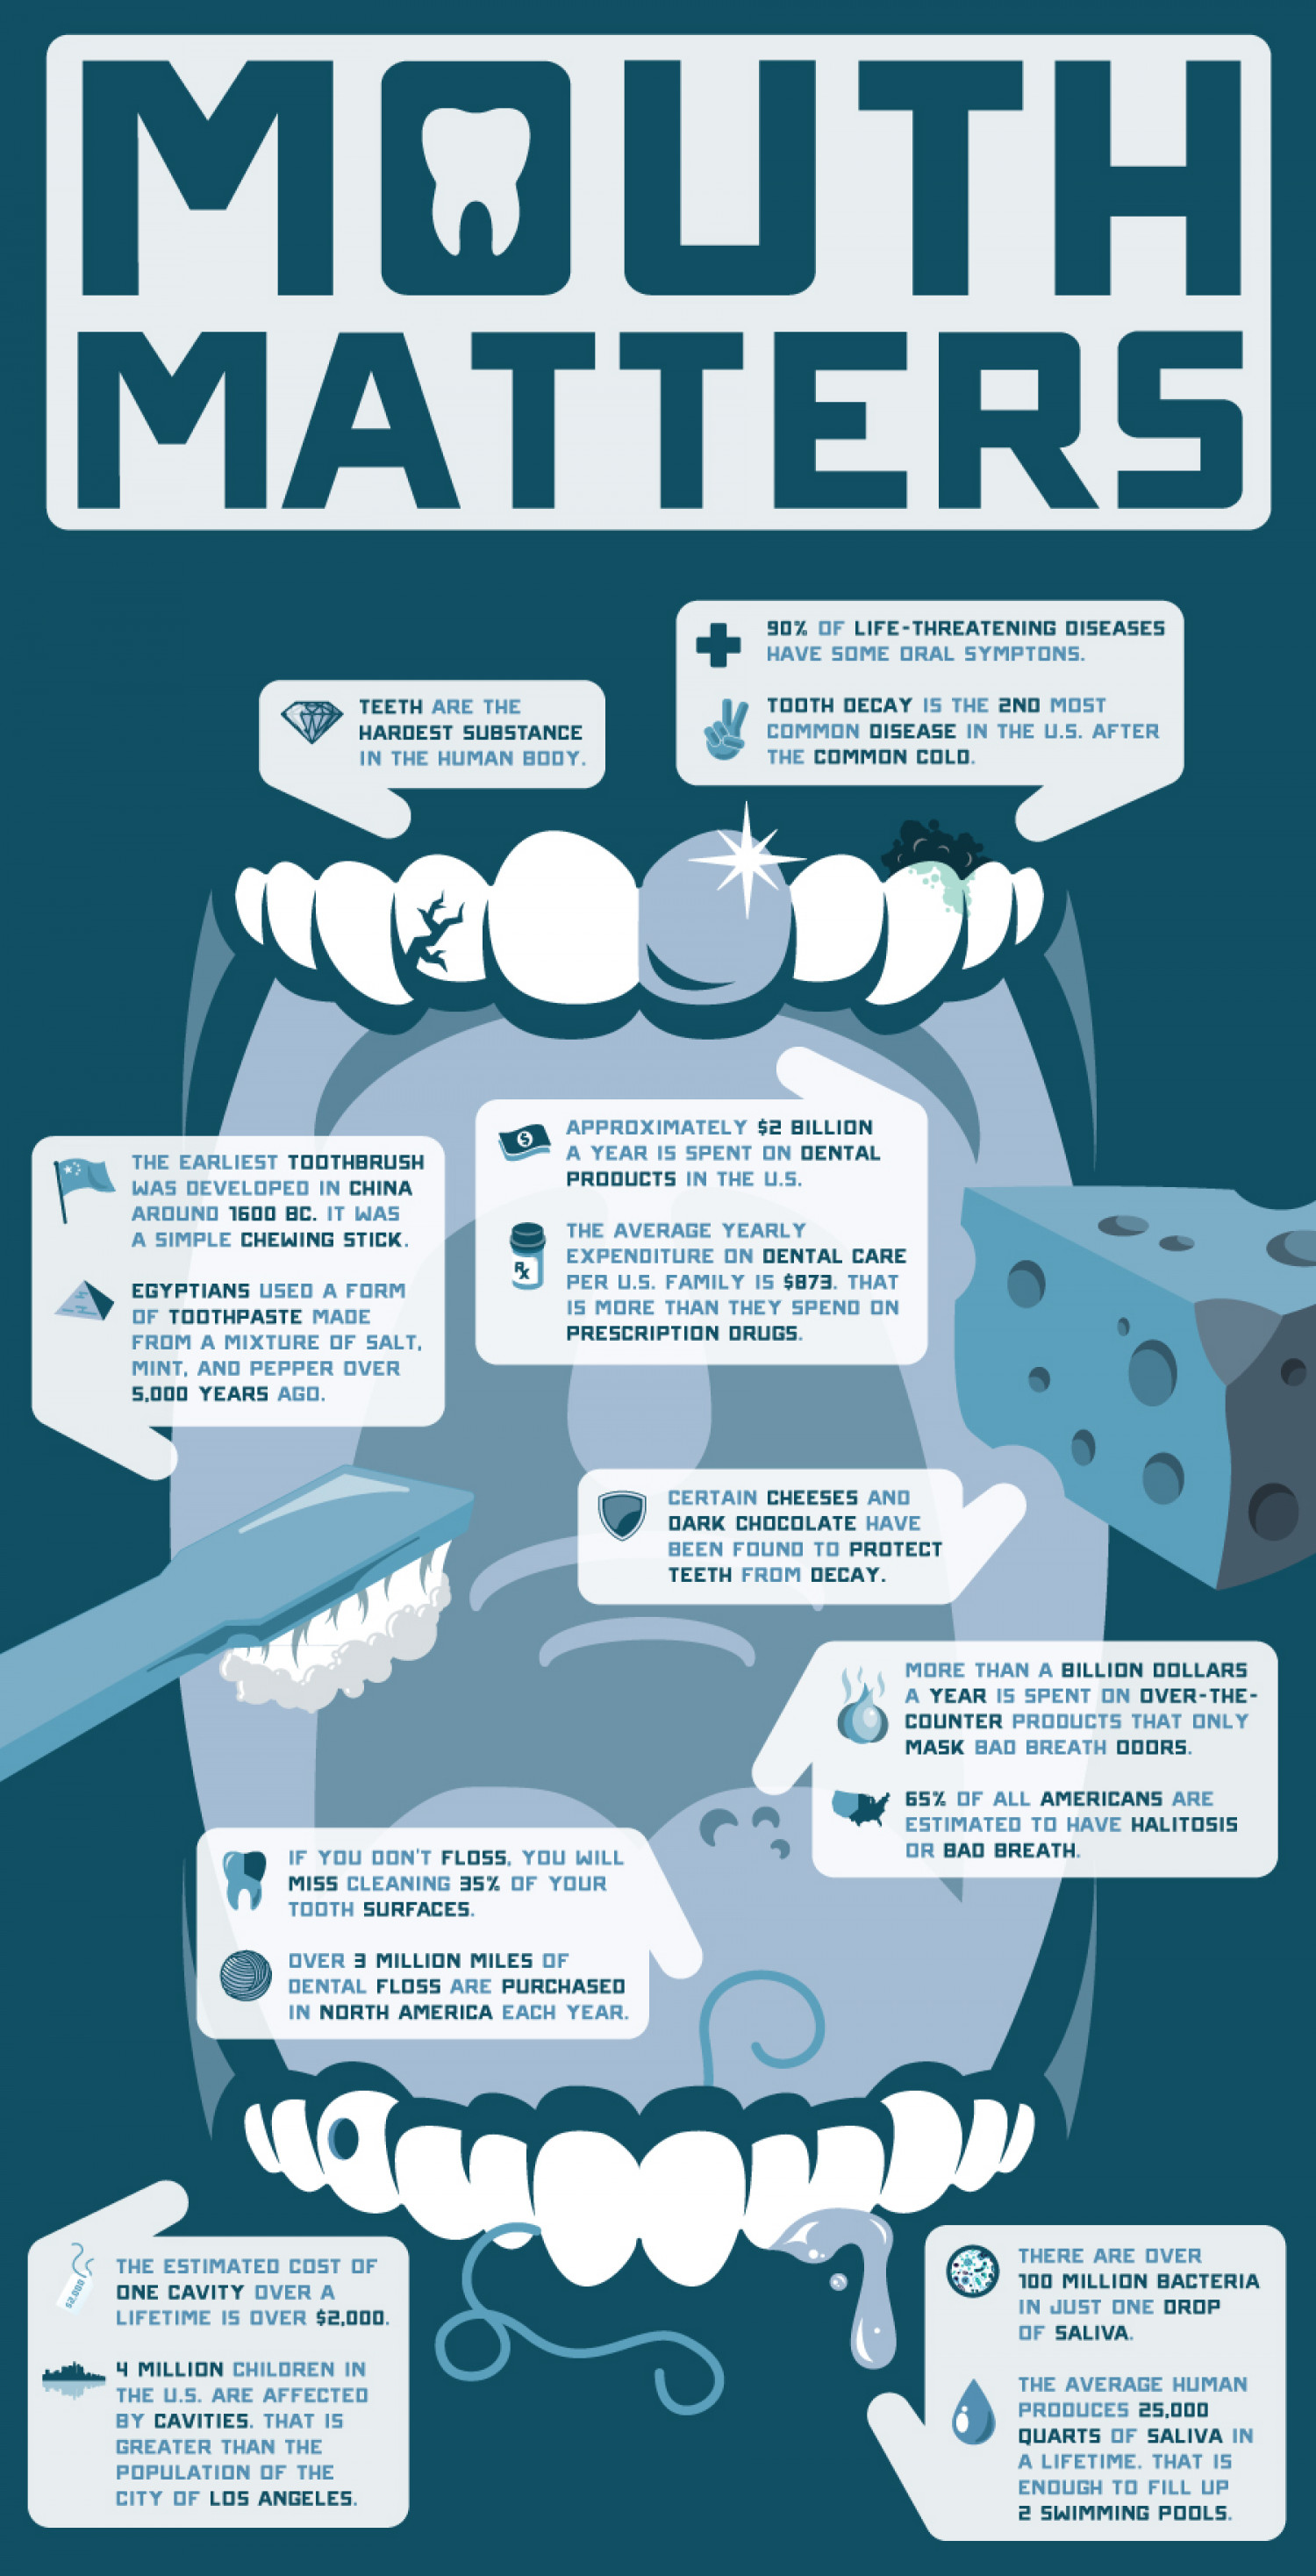 Your Mouth Matters - Fun Dental Facts Infographic